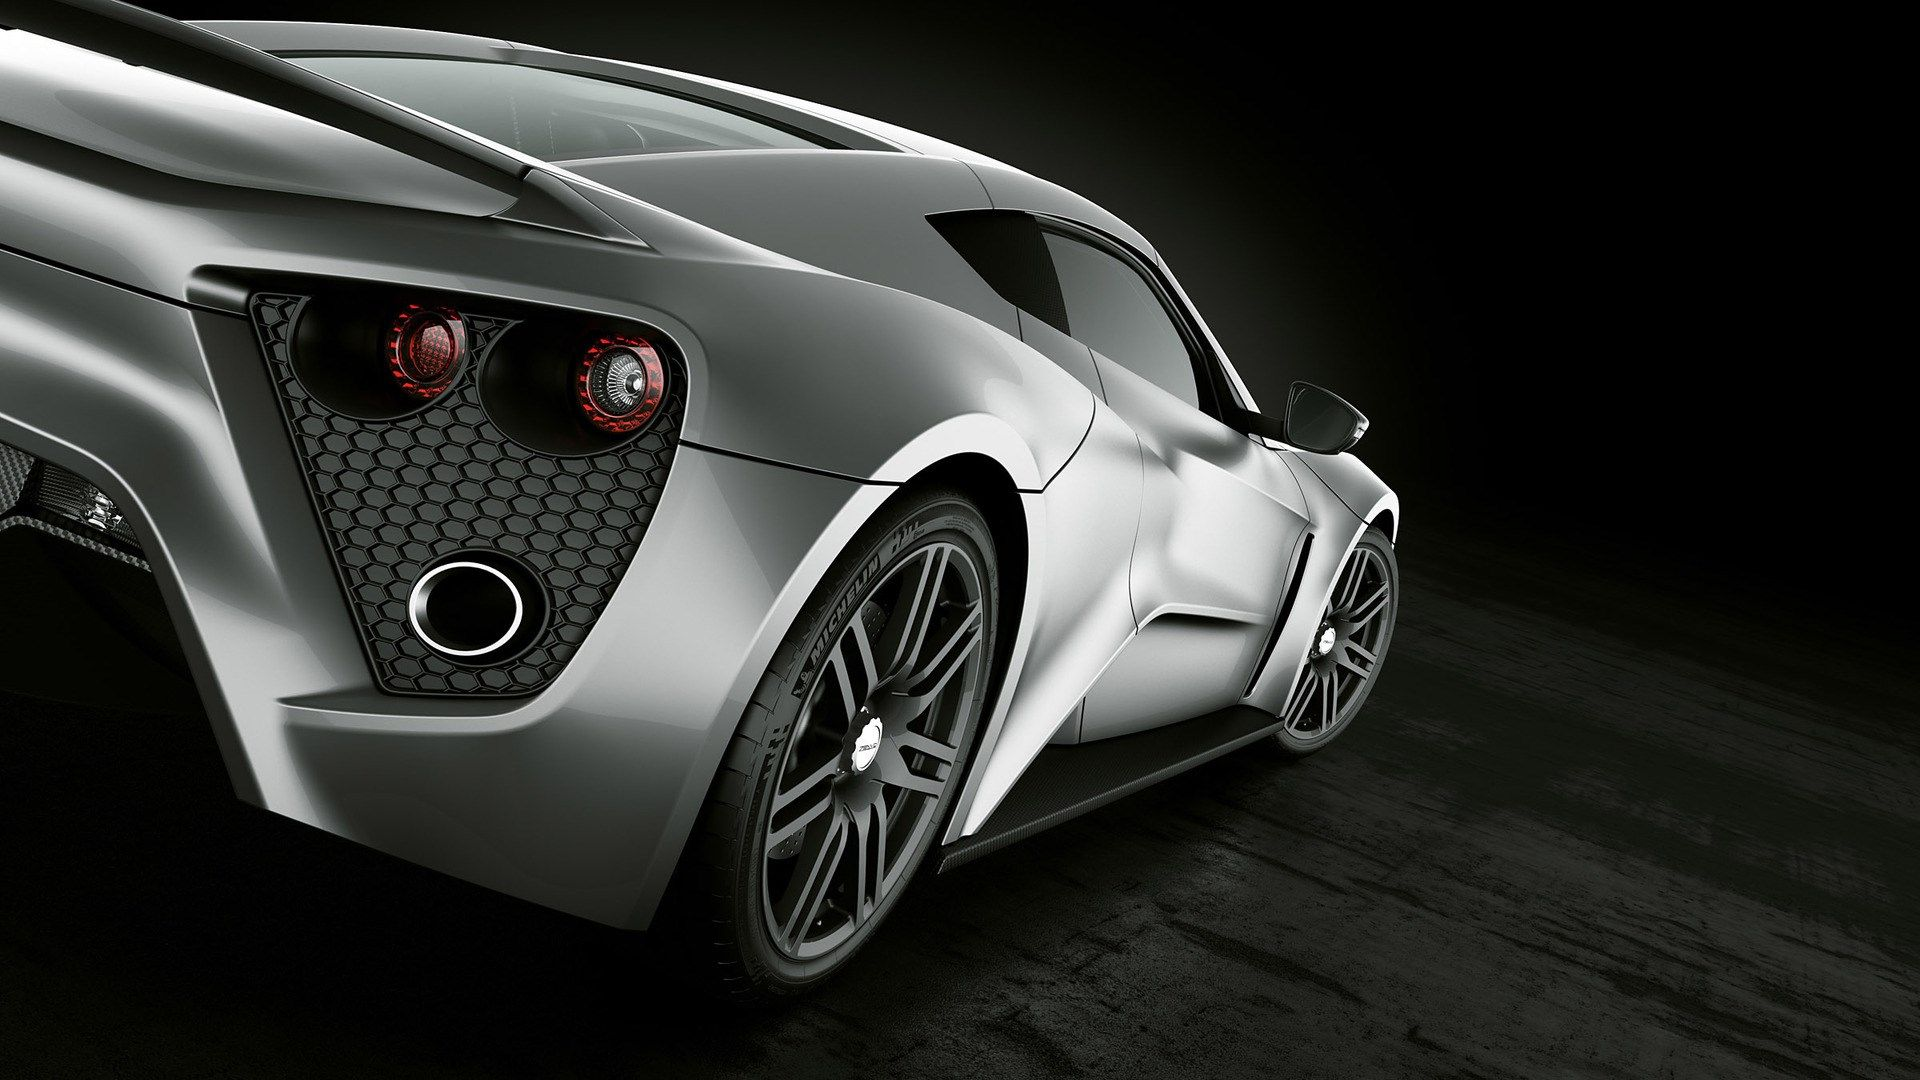 Cool Cars Wallpaper Background HD | Cars | Pinterest | Car Wallpapers And  Cars